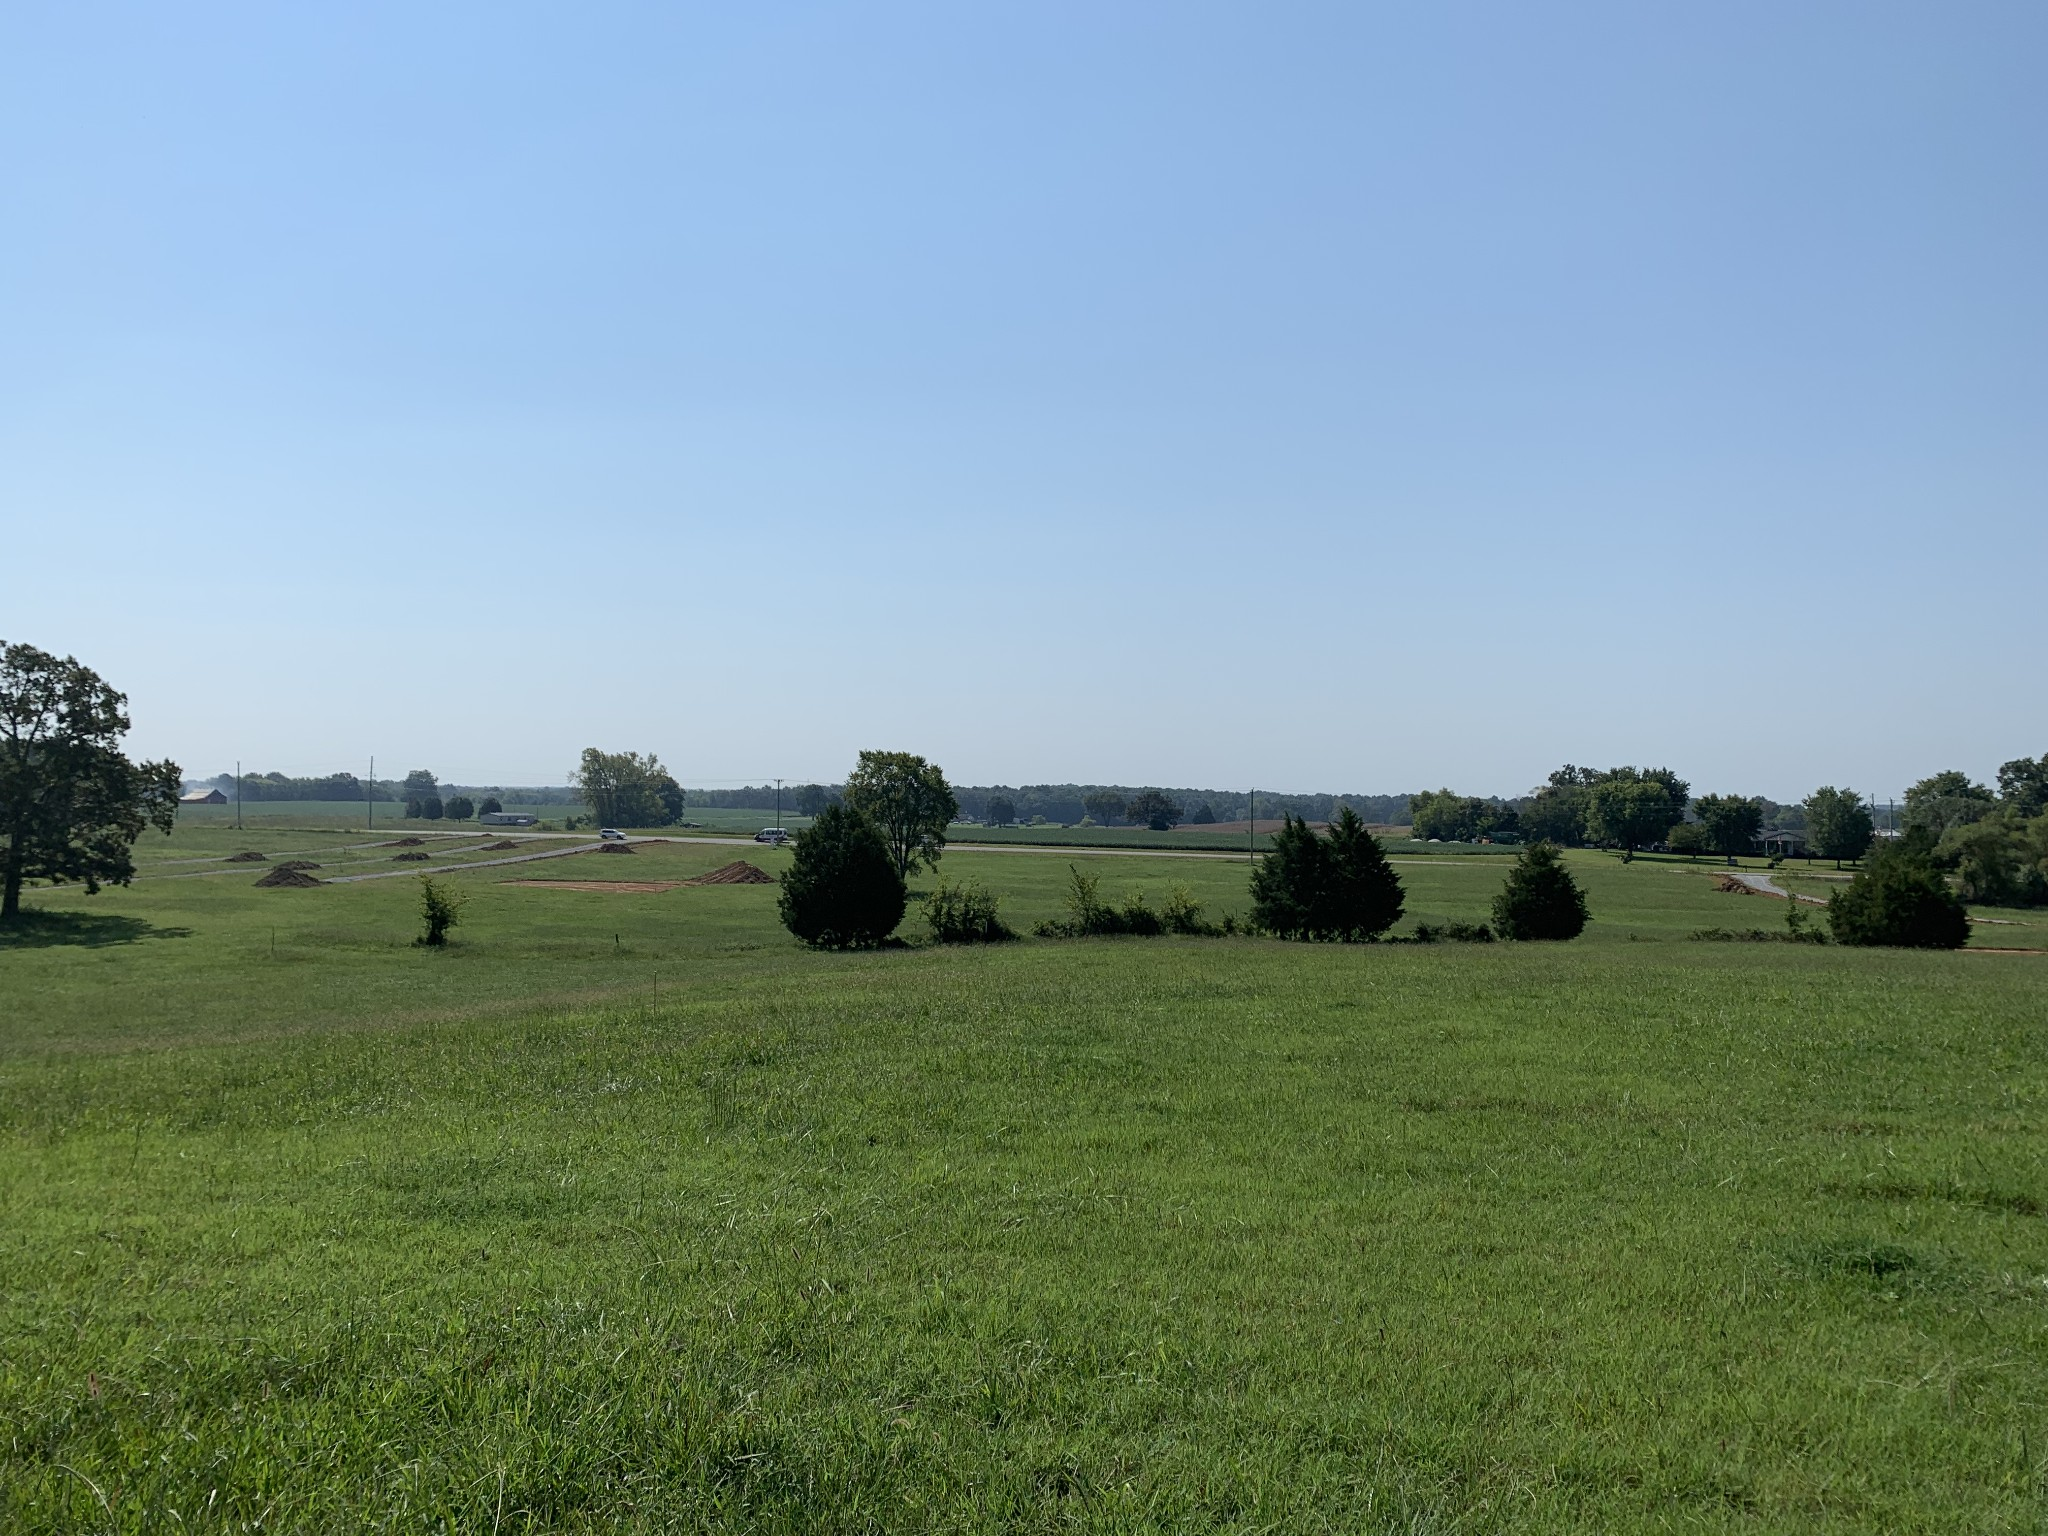 6602 Hwy 25 E Lot 4, Springfield, TN 37172 - Springfield, TN real estate listing